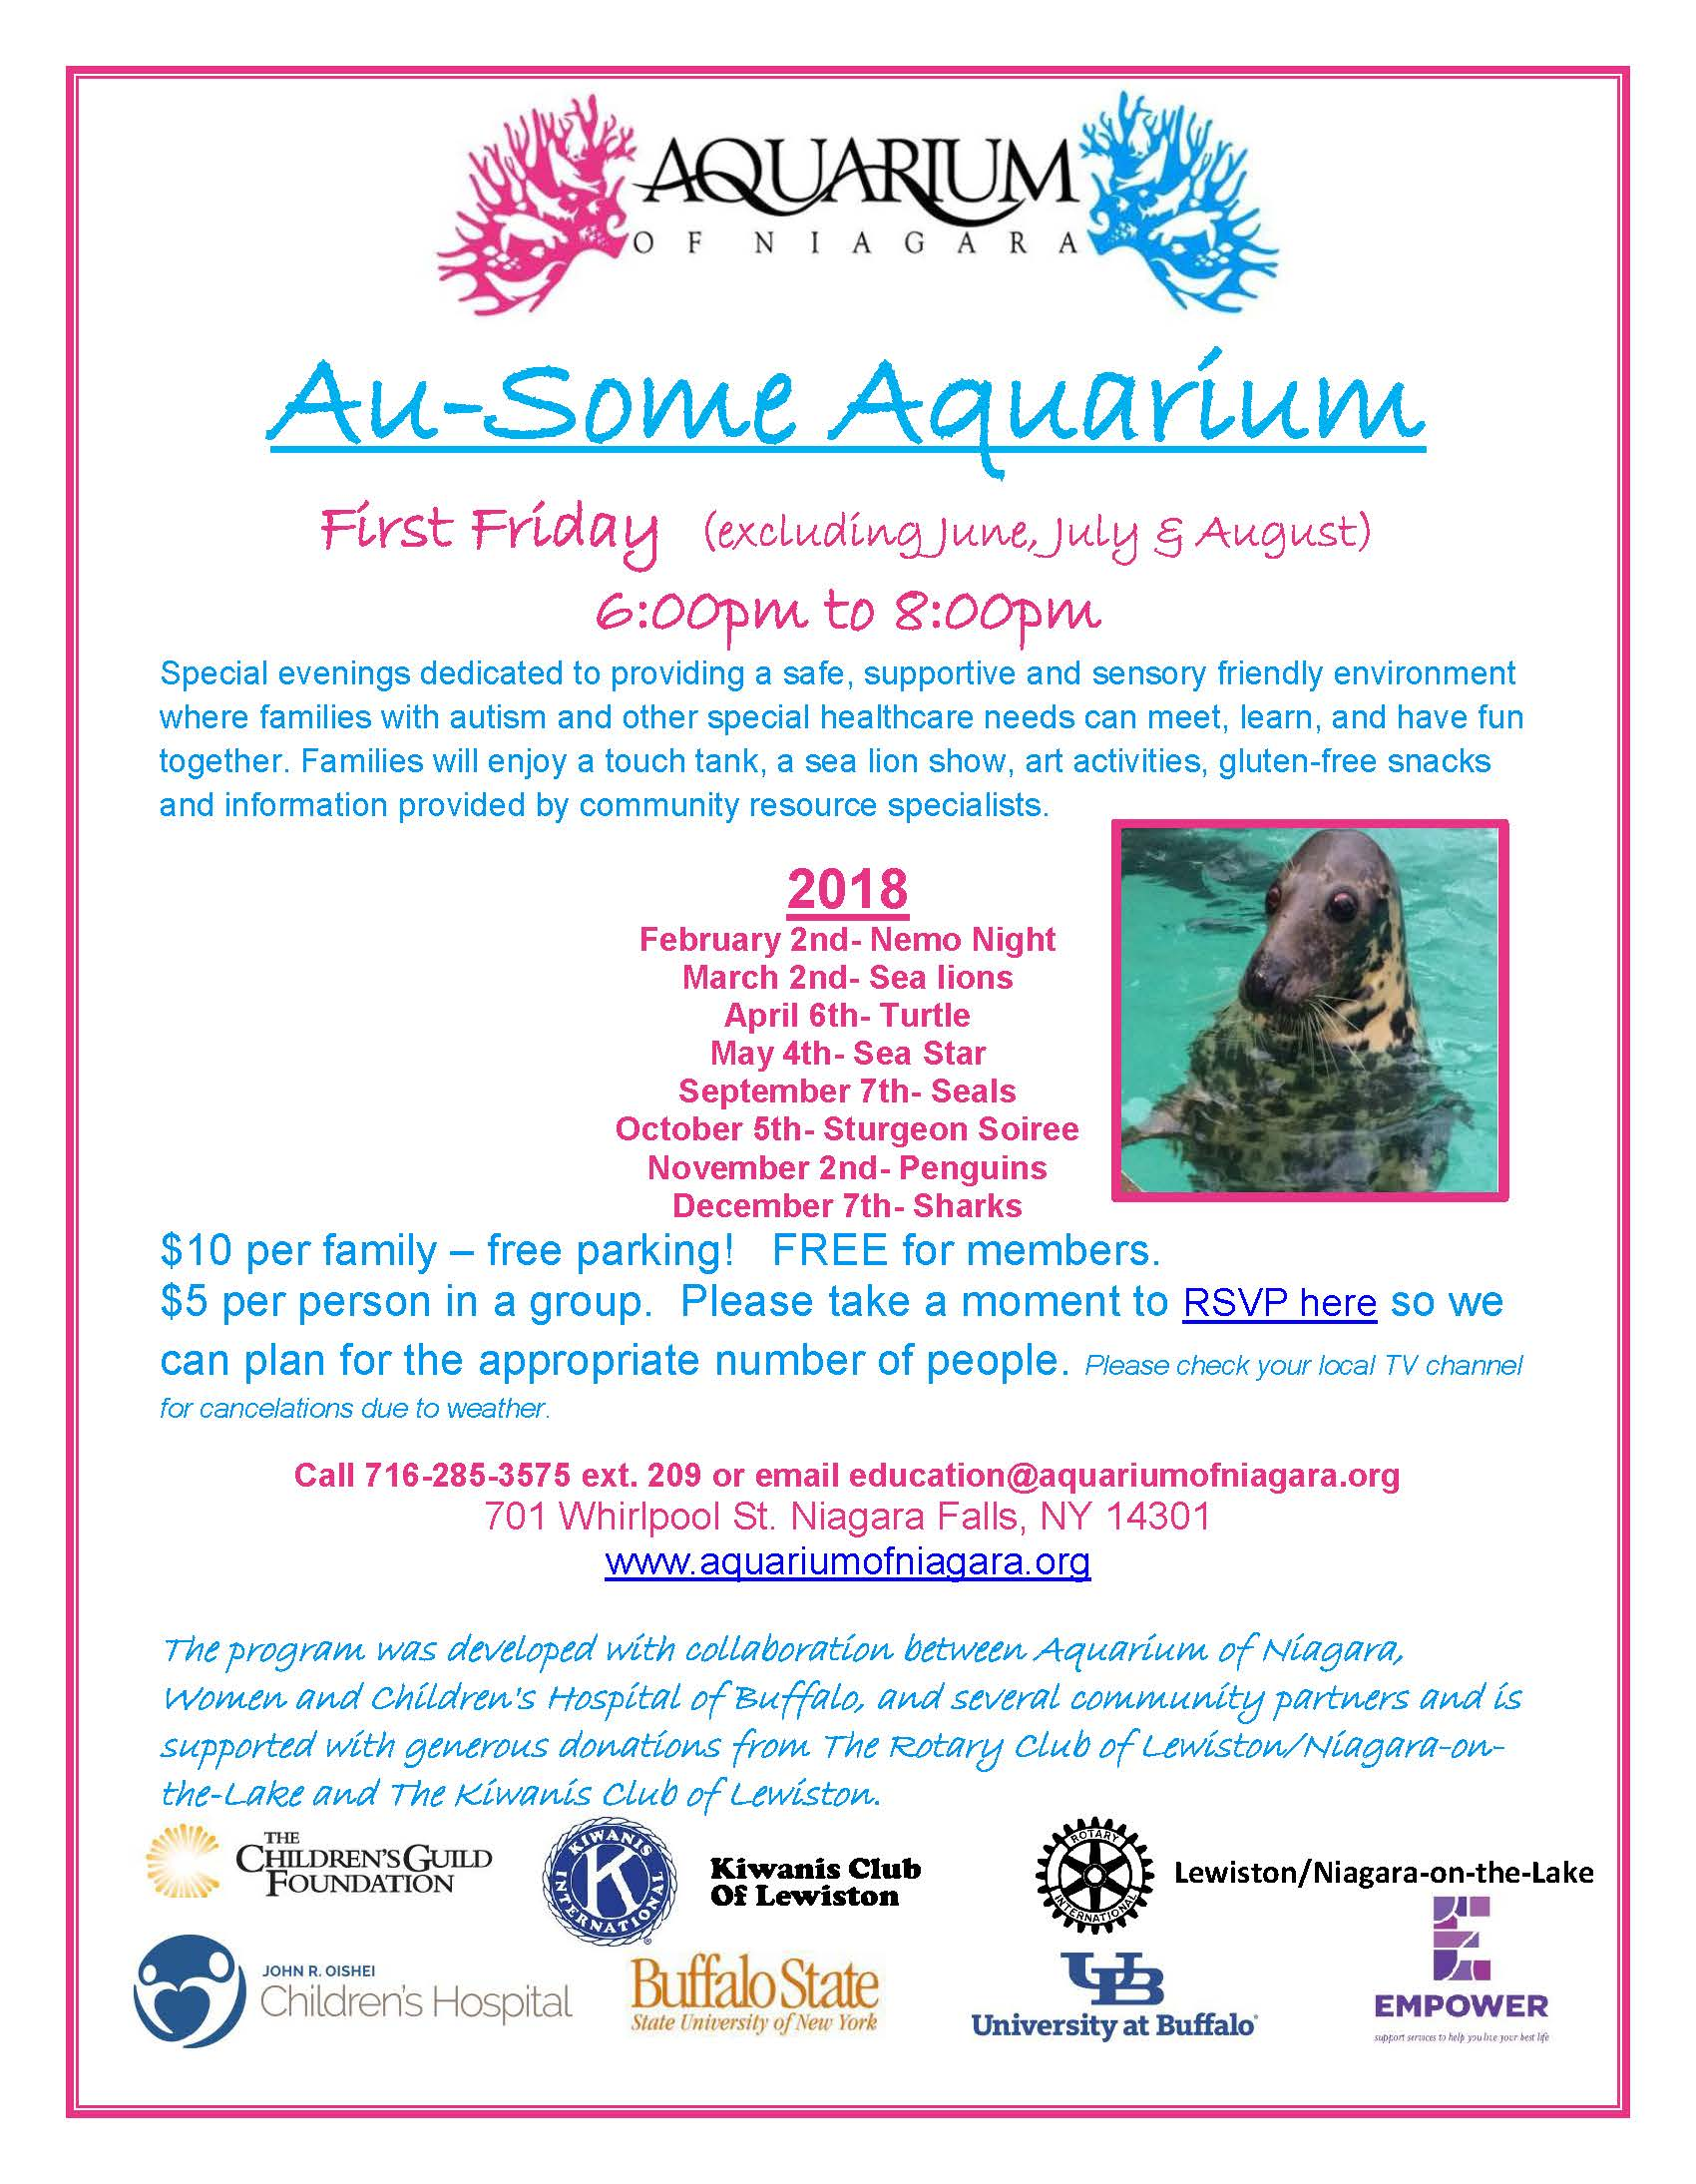 2018 au-some aquarium flyer